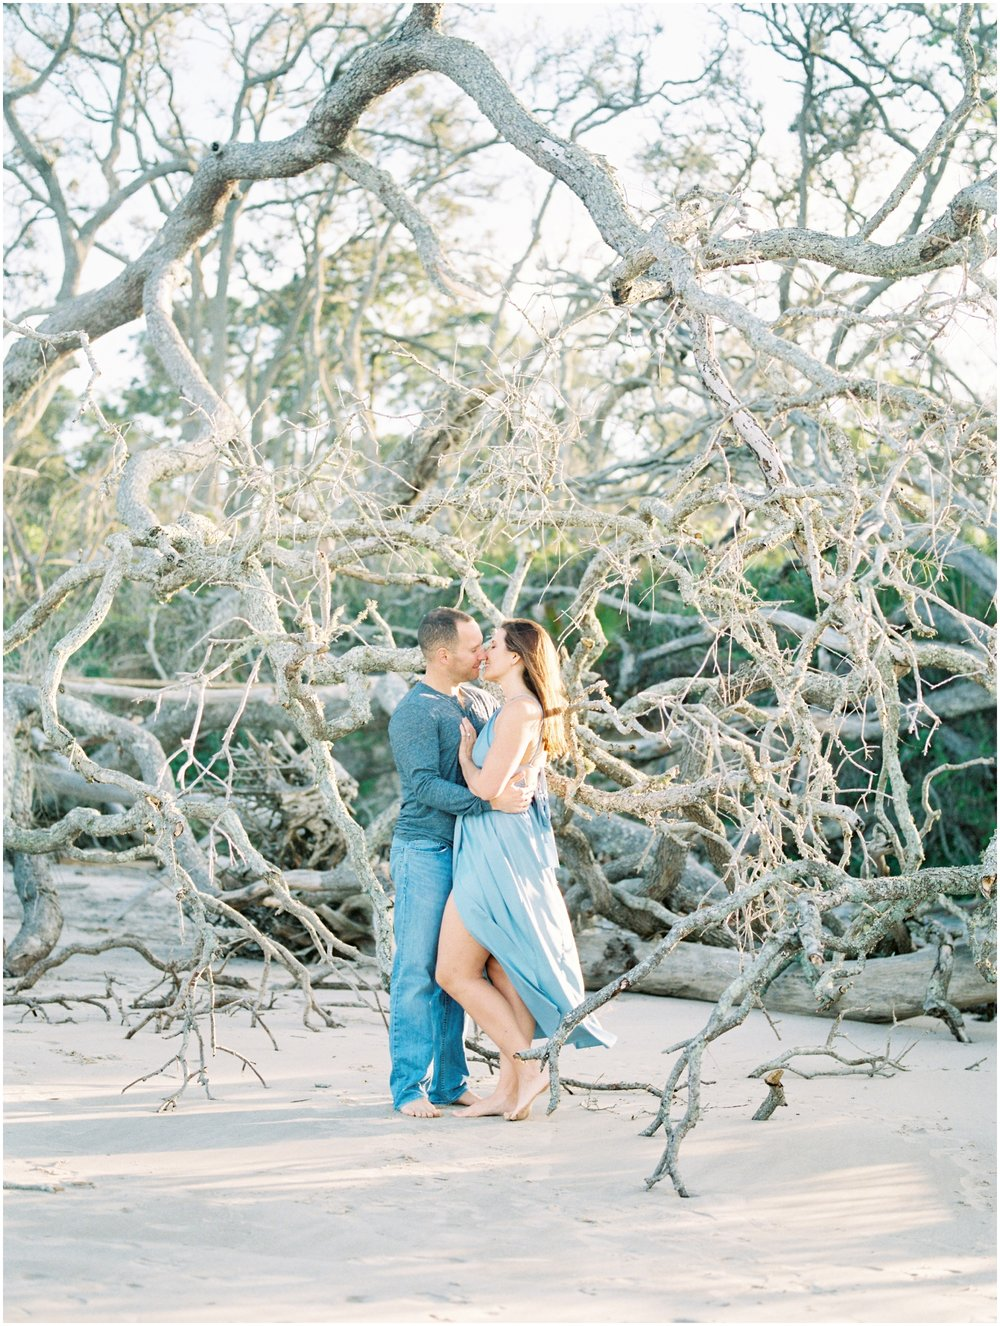 Lisa Silva Photography -Engagement Session at Big Talbot Island- Jacksonville and North East Florida Fine Art Film Photographer_0038.jpg